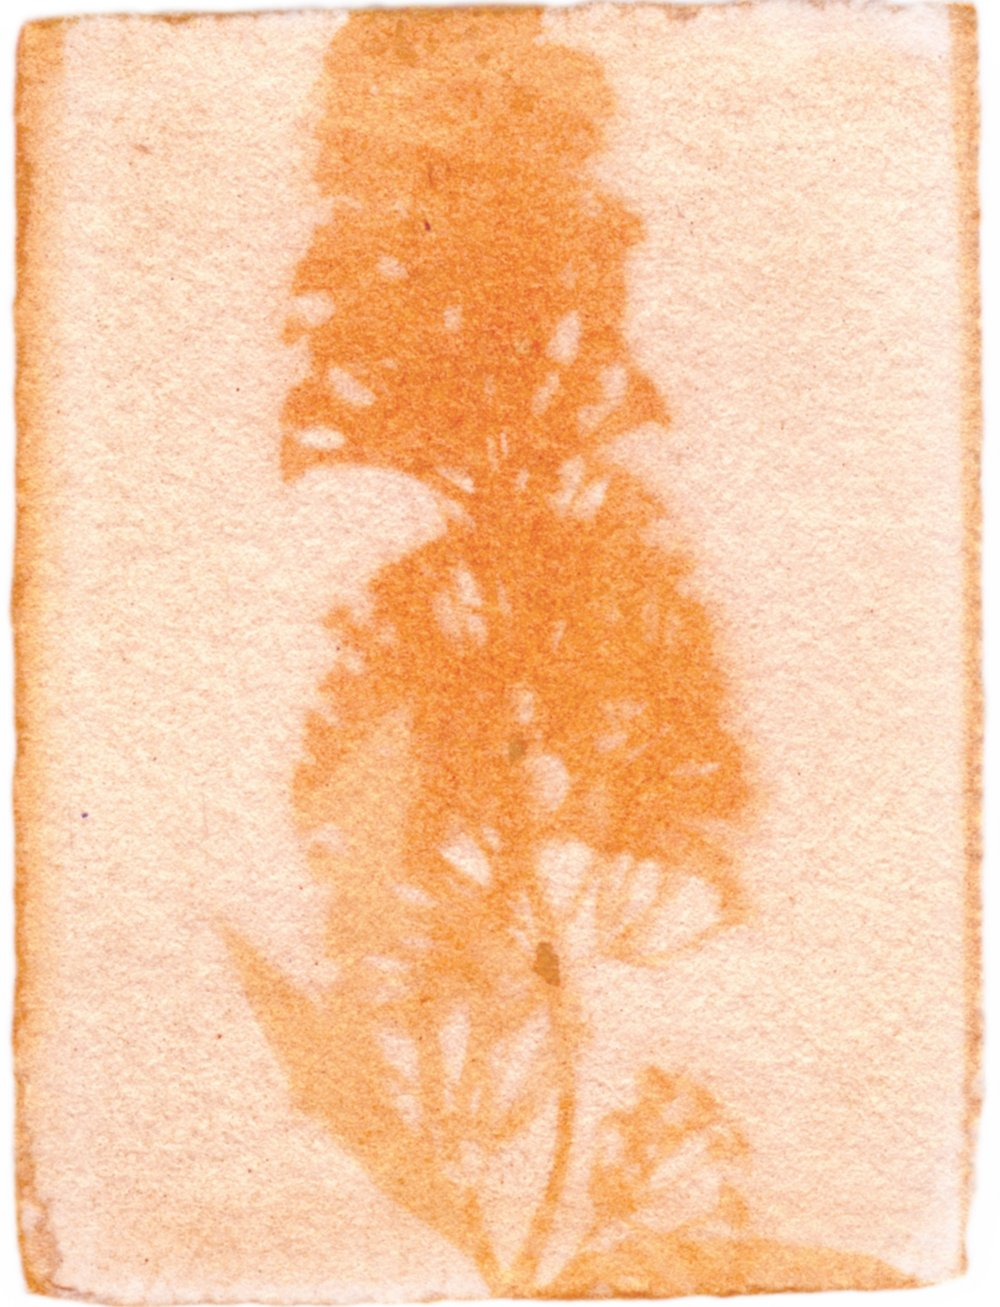 "Buddleia Plant with Achiote Emulsion, 3.5"" x 2.5"", 2017"